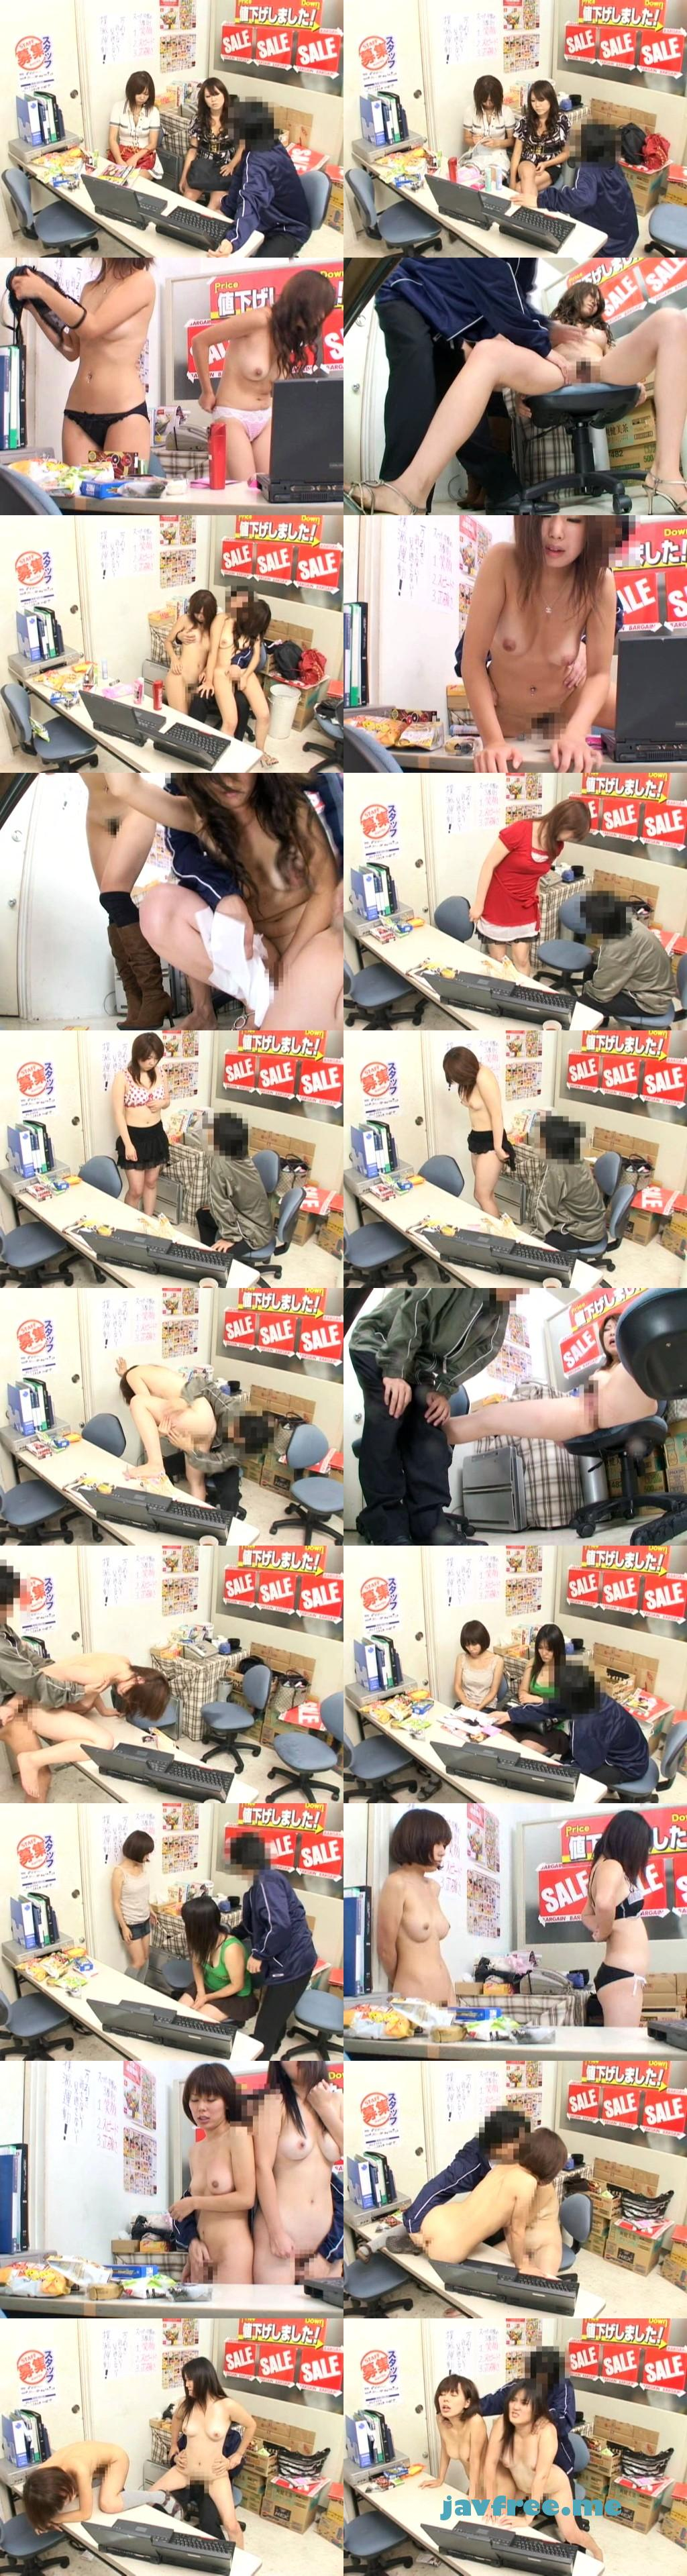 [HYPD-011] 失禁潮吹き折檻セックス 万引きで捕まり怯える女達 - image HYPD-011a on https://javfree.me